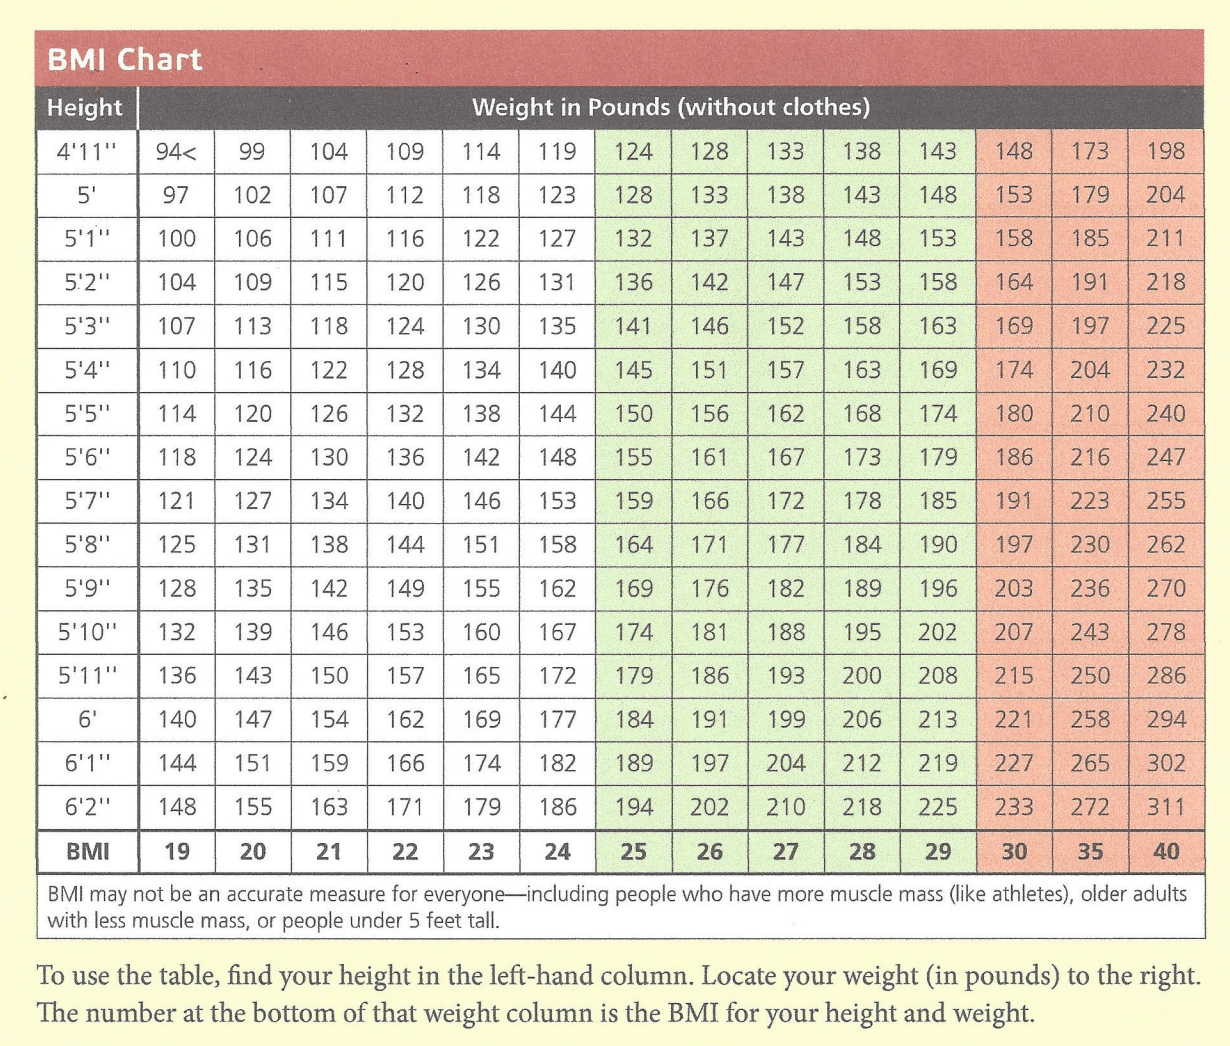 Research begins to question use of bmi body mass index whats the best measurement of health the bmi chart nvjuhfo Choice Image